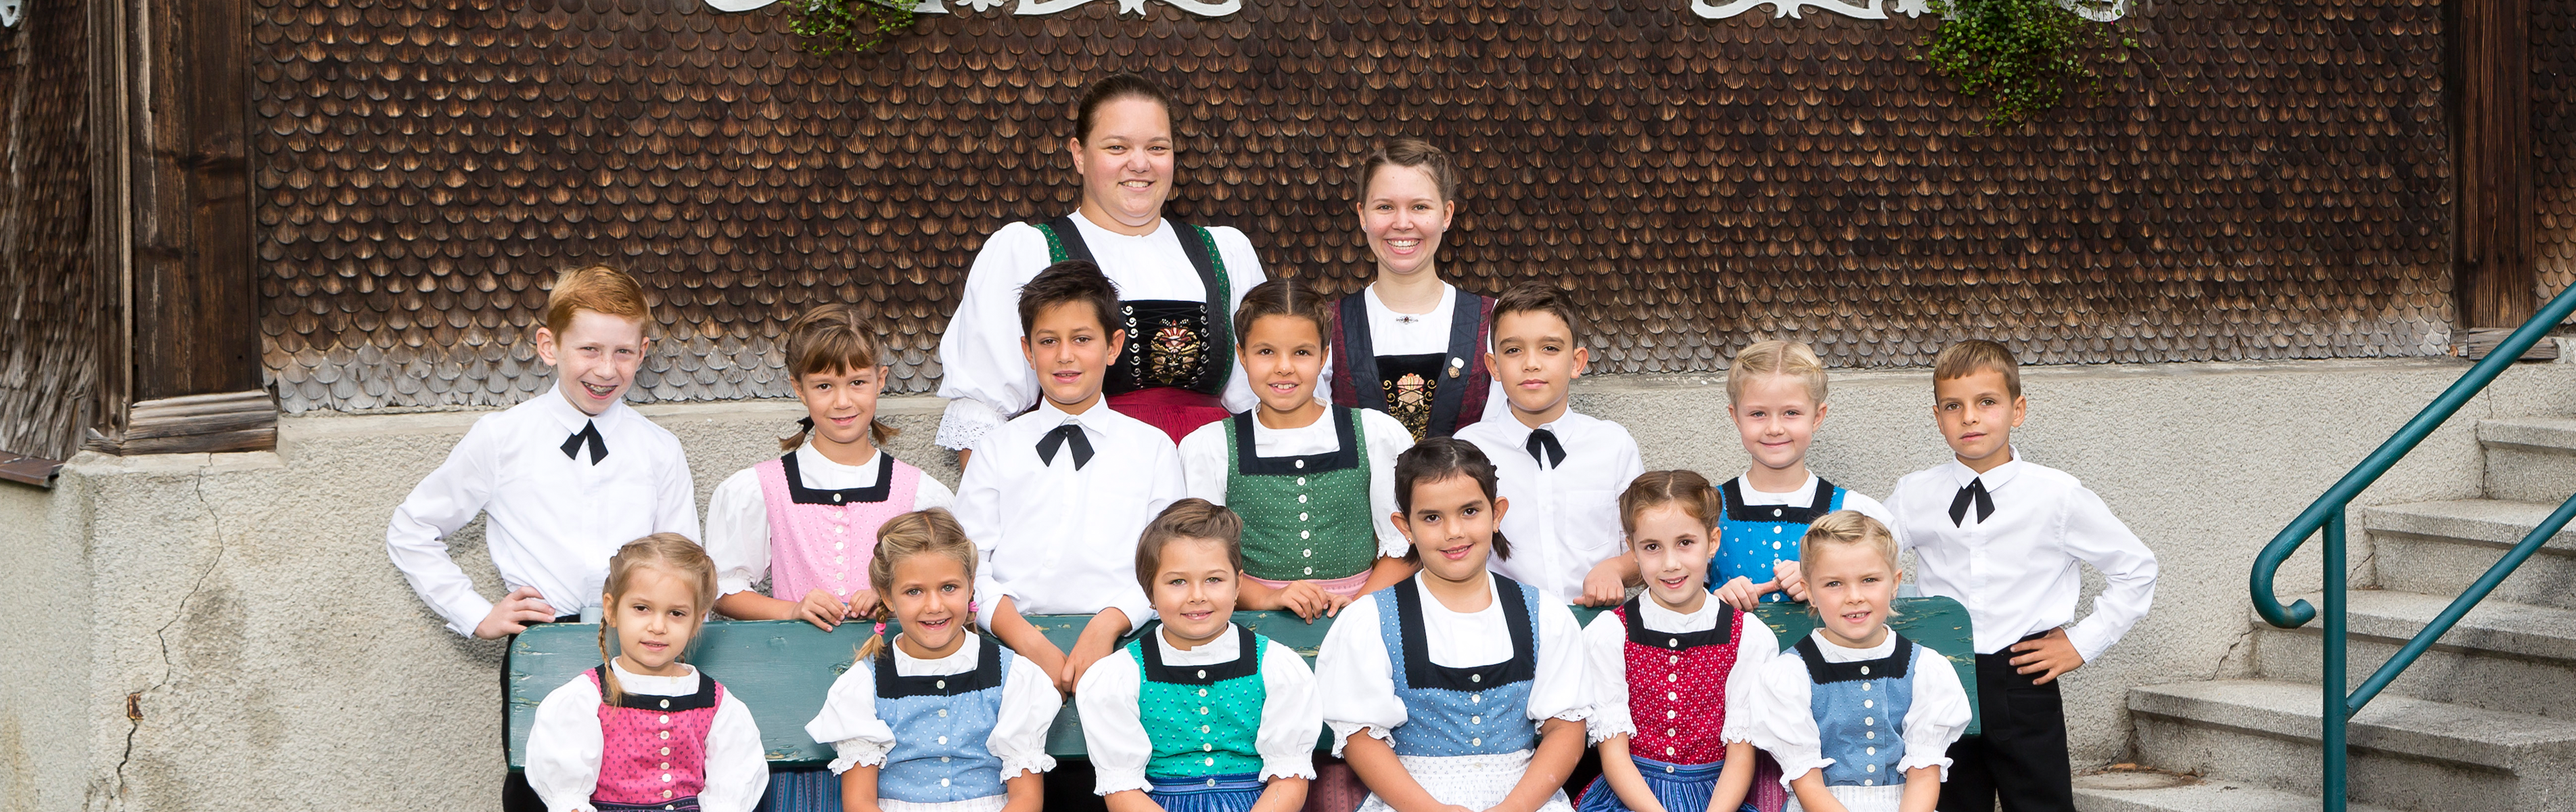 Slider_Kindertanz_Gruppe